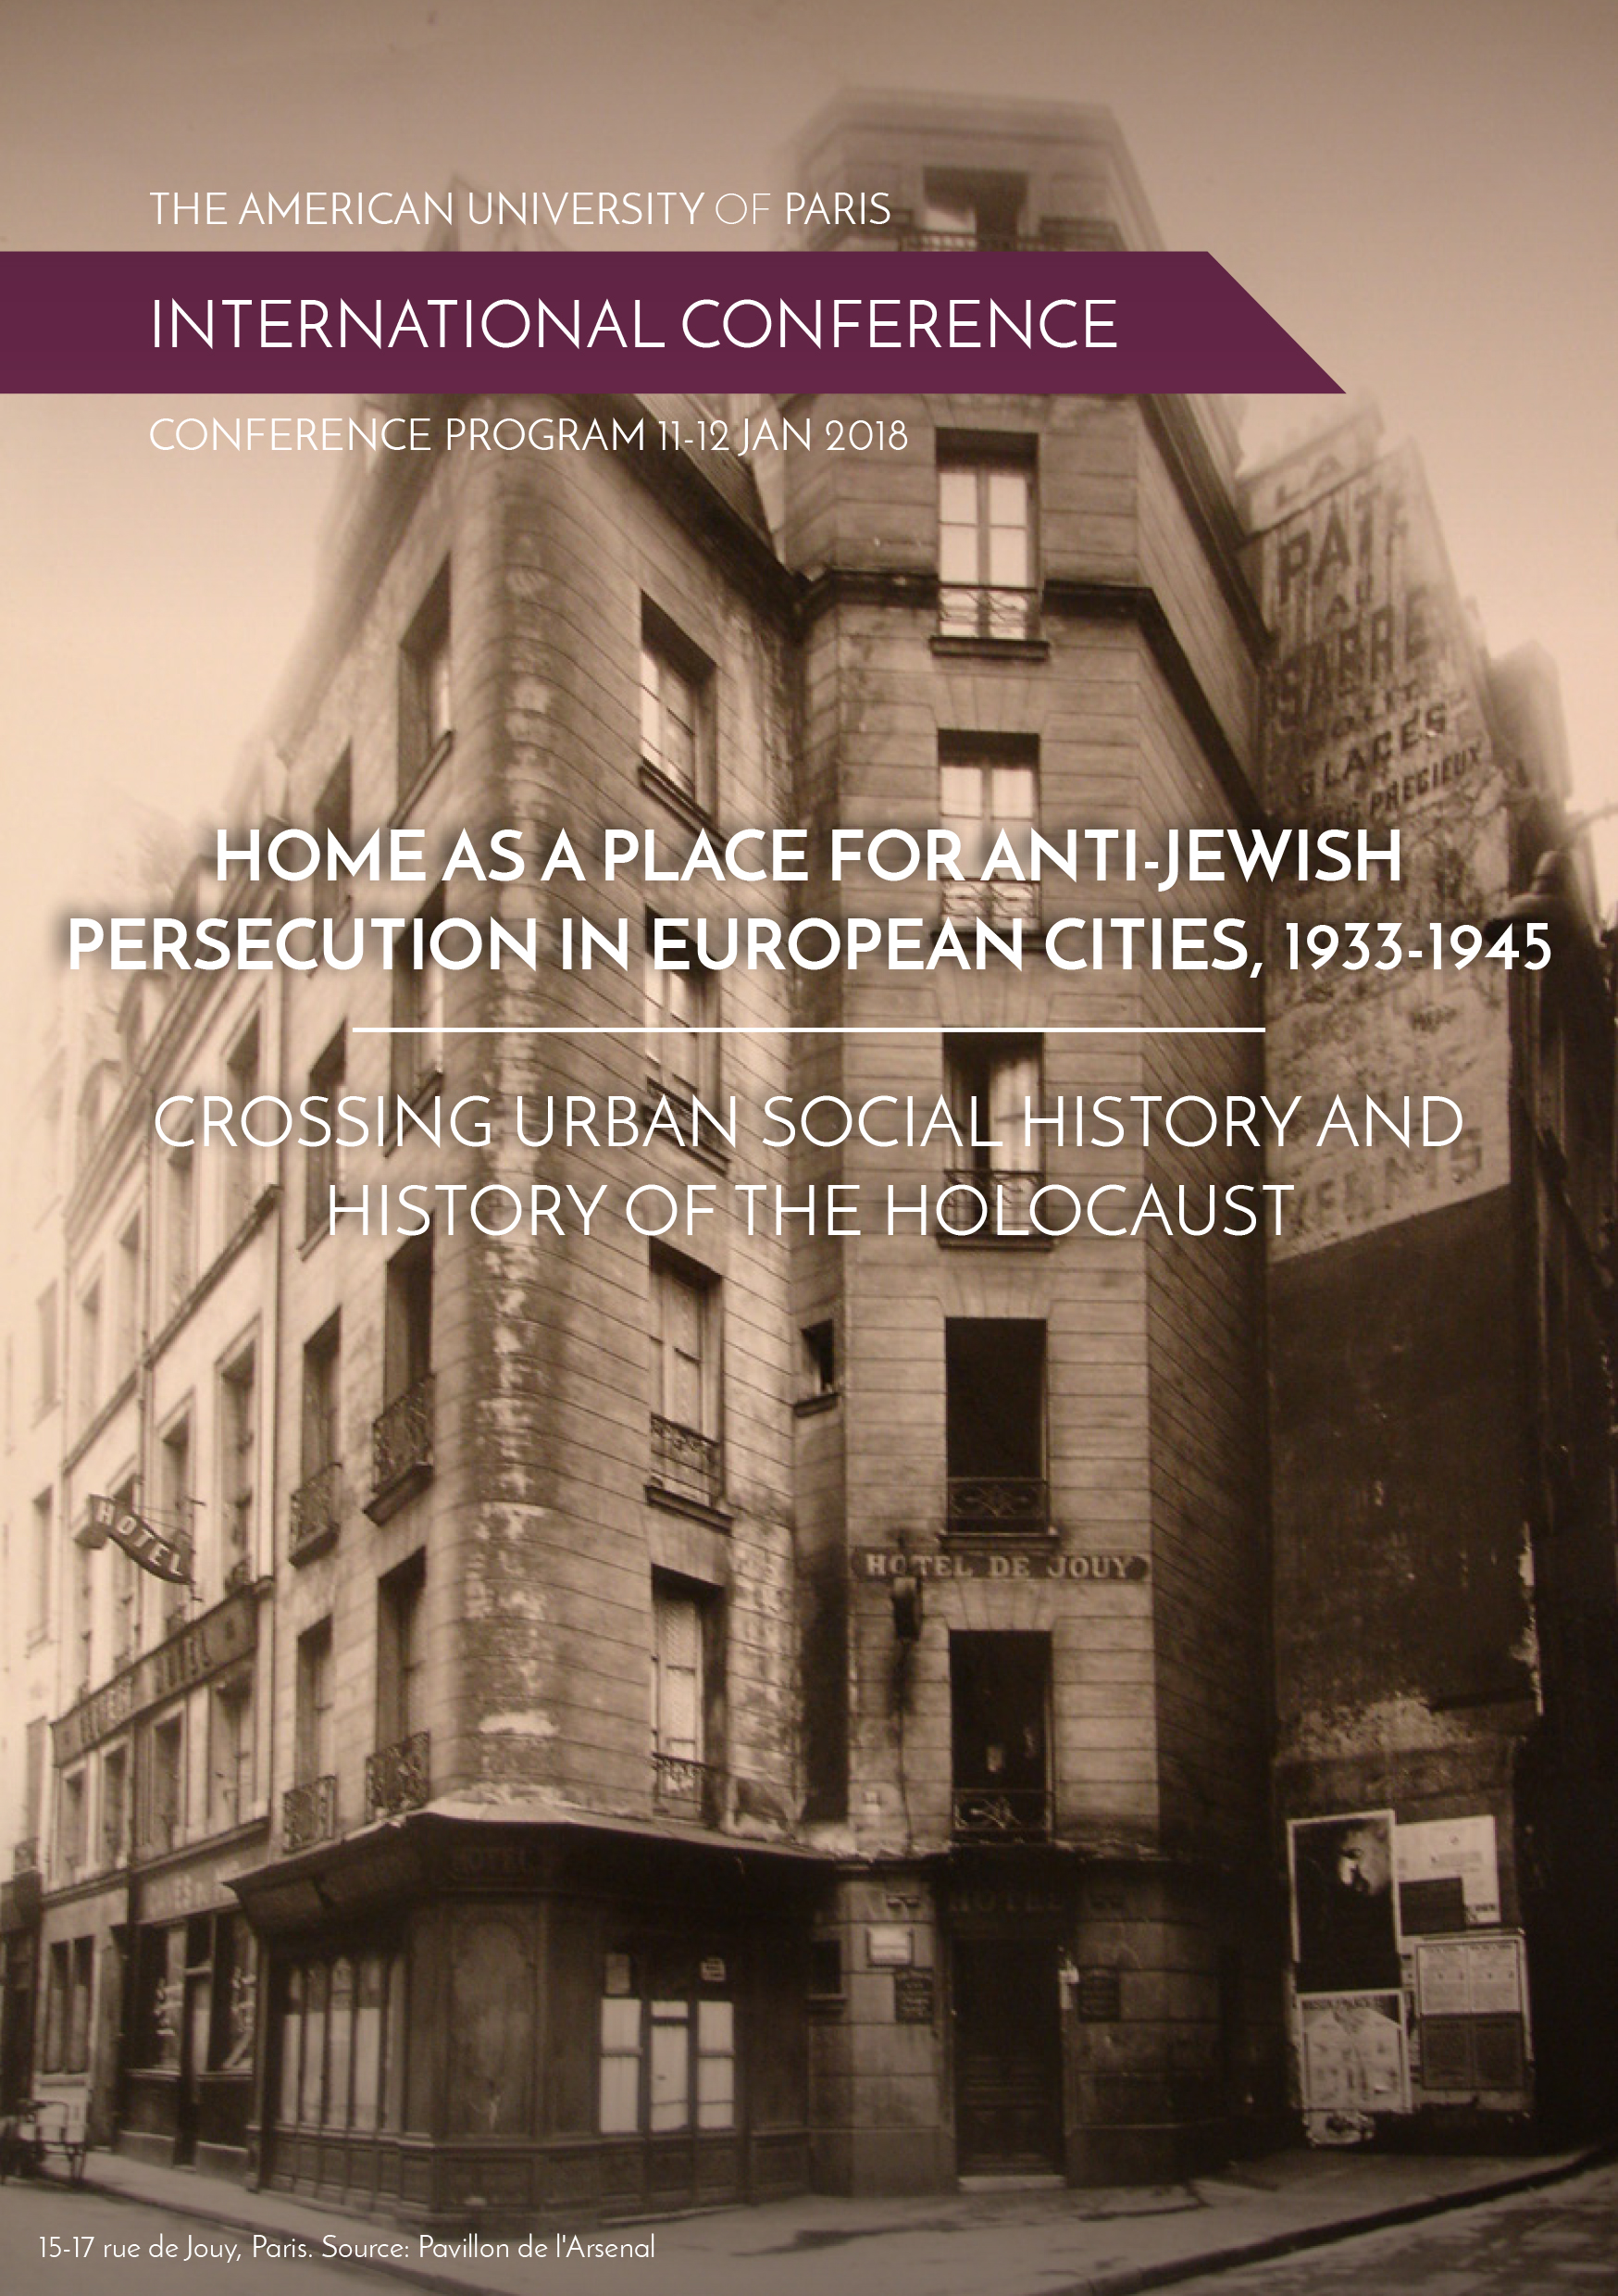 Home as a Place for Anti-Jewish Persecution in European Cities